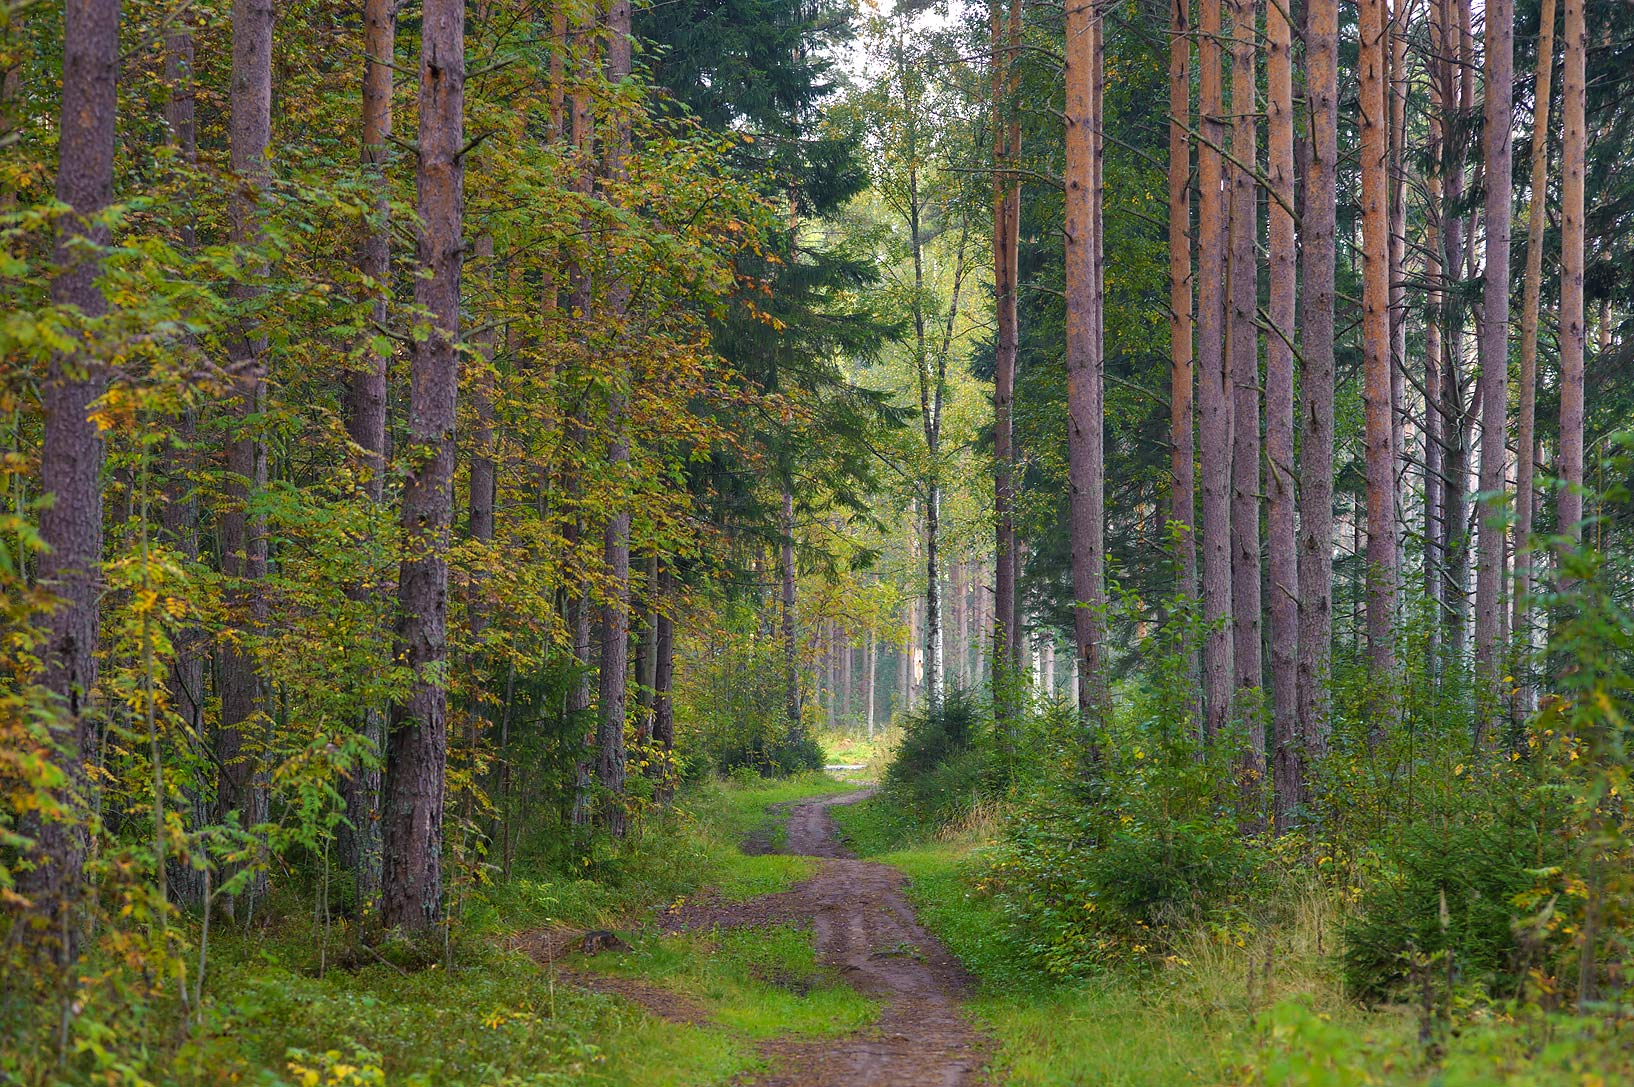 Forest road near Okhta River in Kuzmolovo, 5 miles north from St.Petersburg. Russia